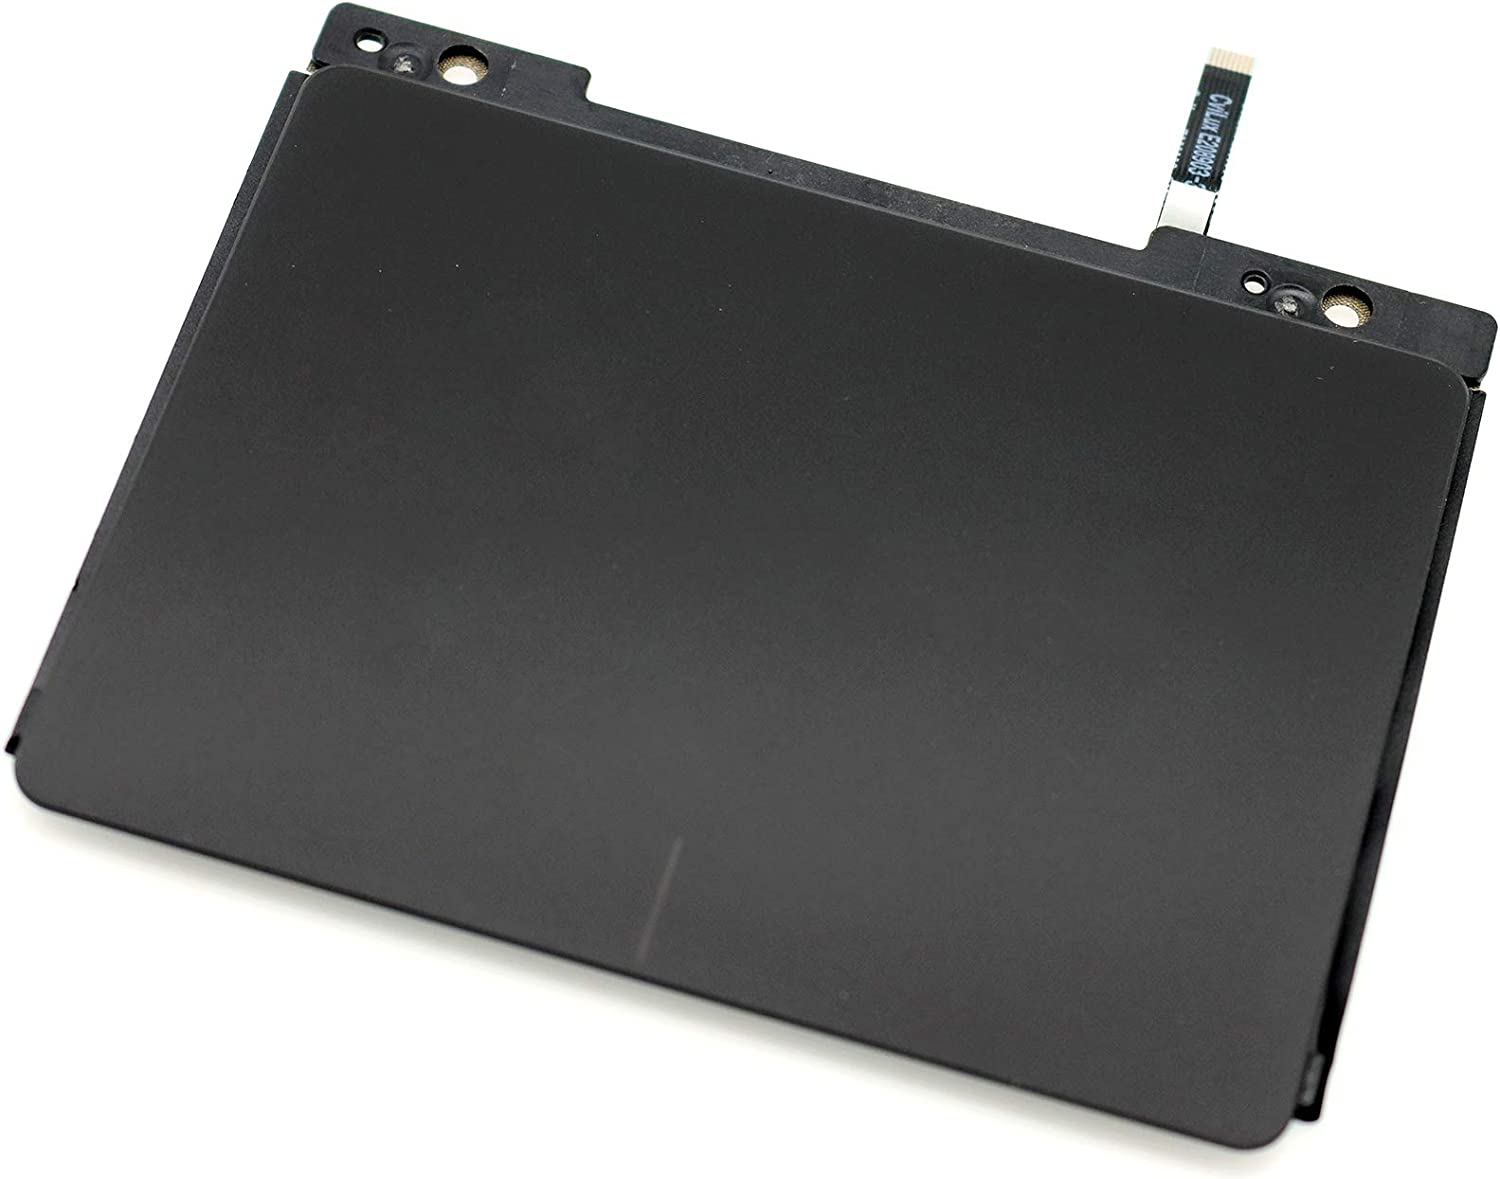 Deal4GO New Touchpad Sensor Module Mouse TrackPad Board Assembly w/Cable Replacement for Dell XPS 15 9530 Precision M3800 NBX0001G200 AP0YI000100 02HFGW 2HFGW